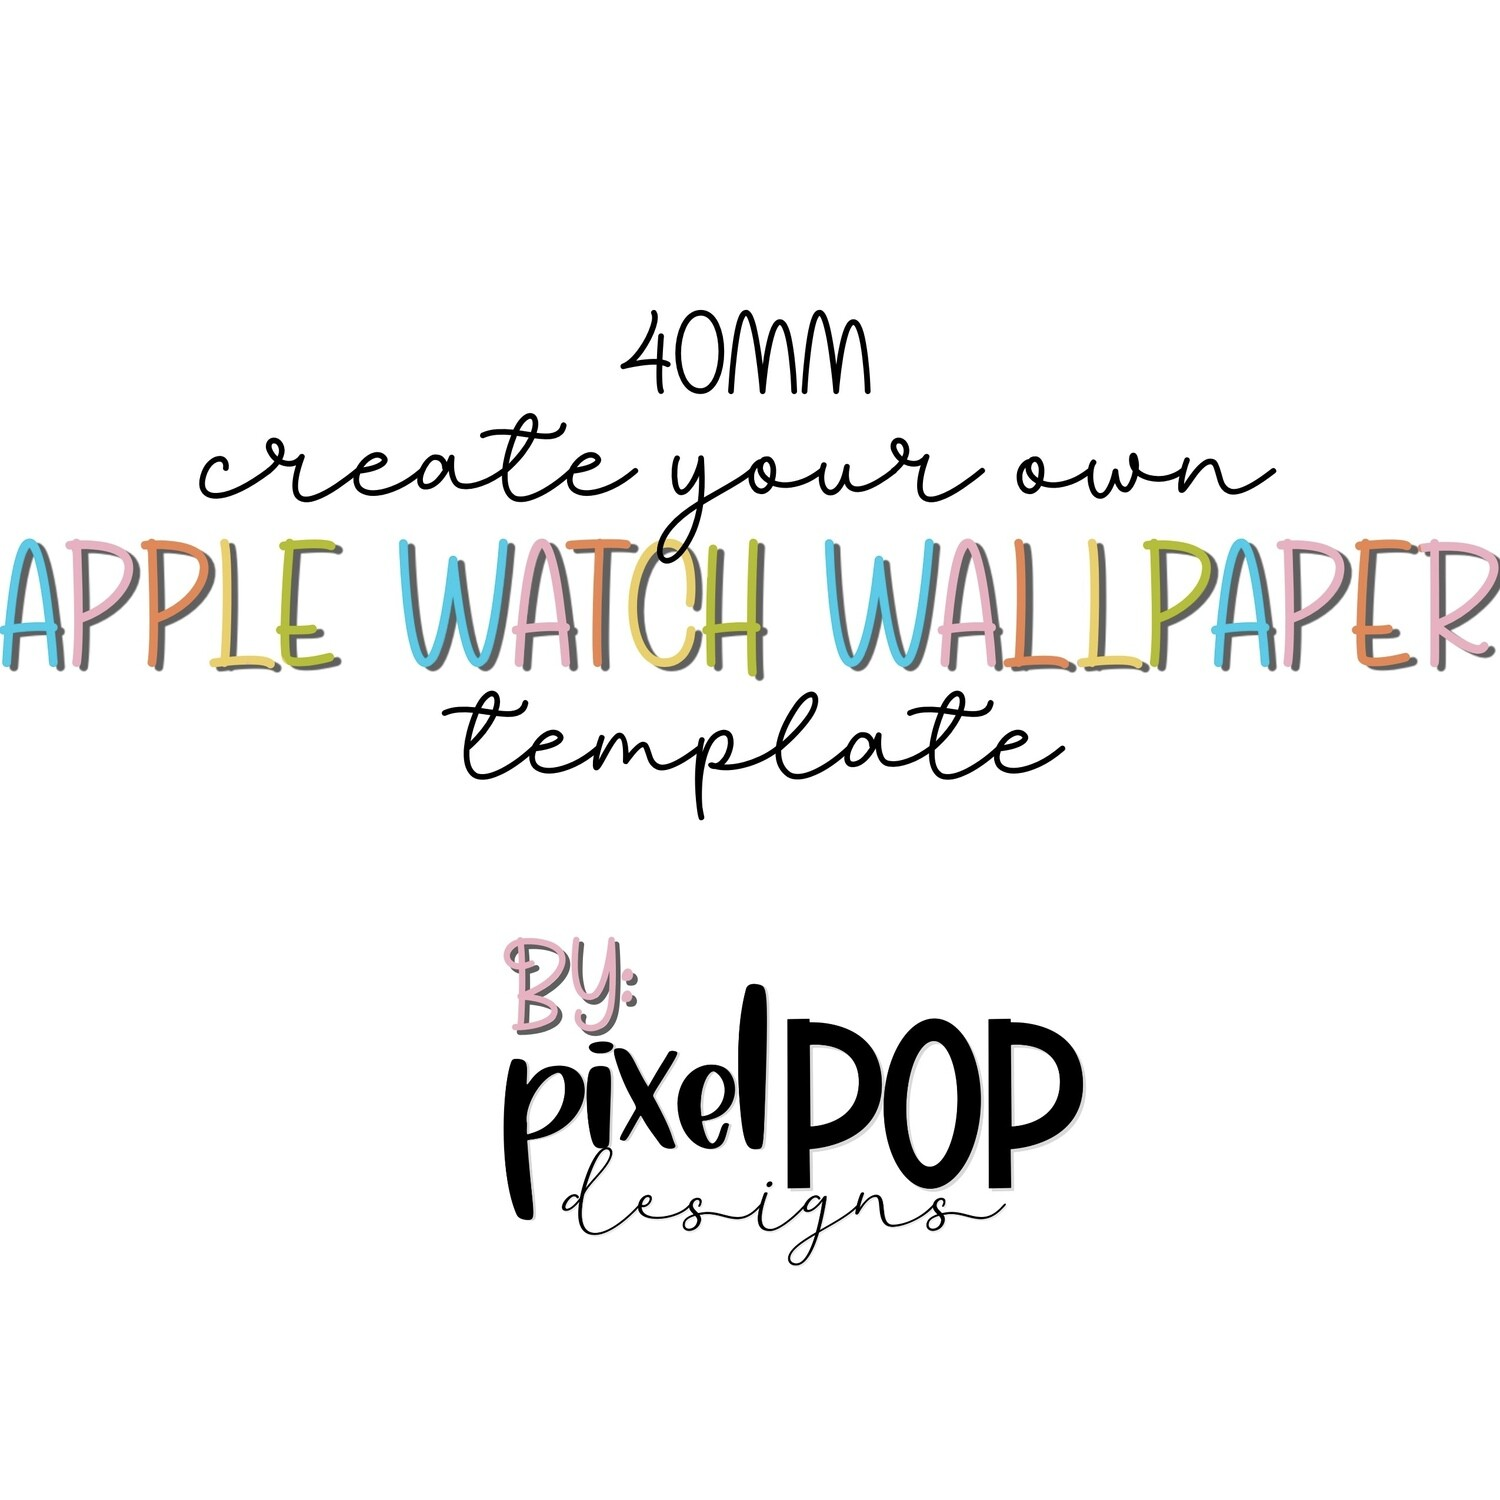 Template - Create Your Own Apple Watch Wallpaper (40mm)